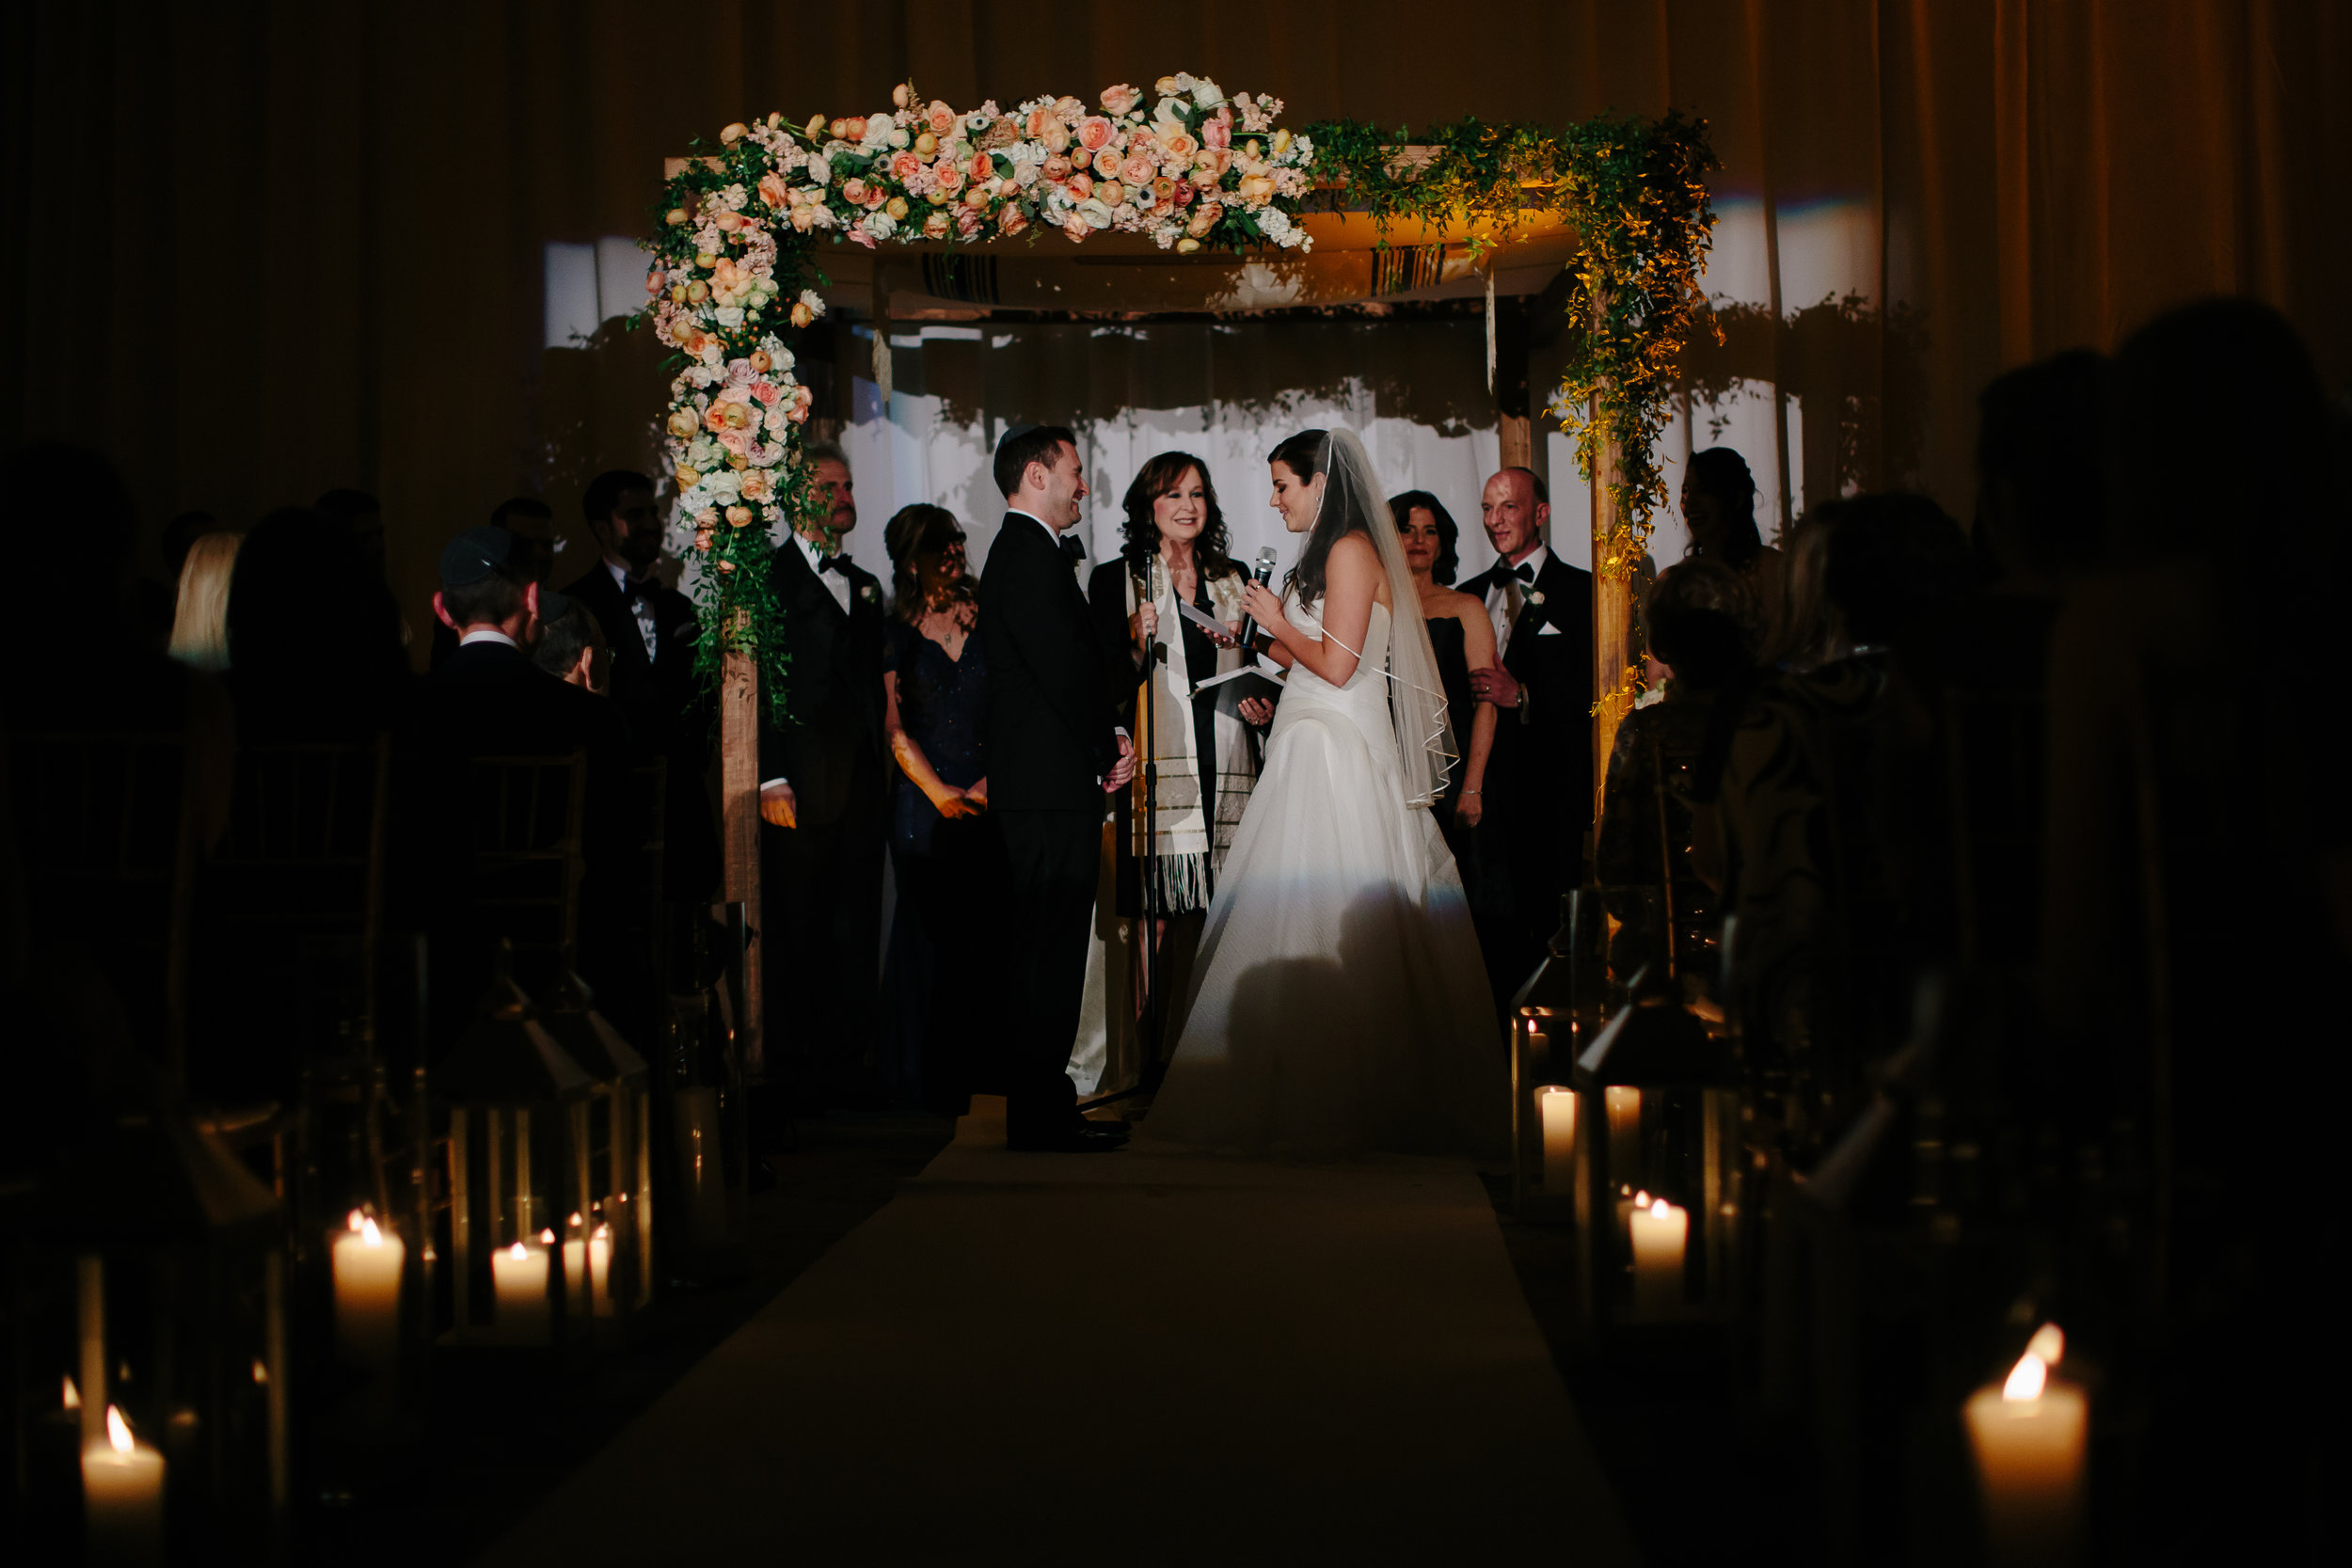 ritz_carlton_wedding_ceremony_miami_tiny_house_photo.jpg